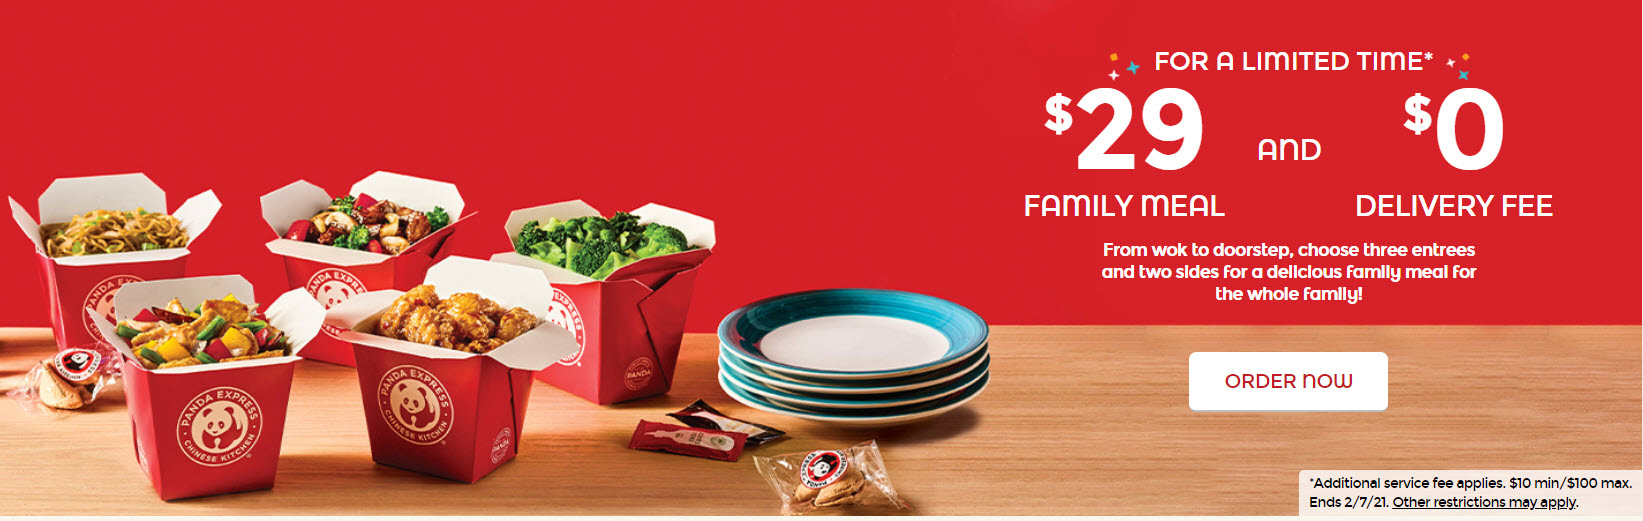 Panda Express Family Meal and Delivery Deals